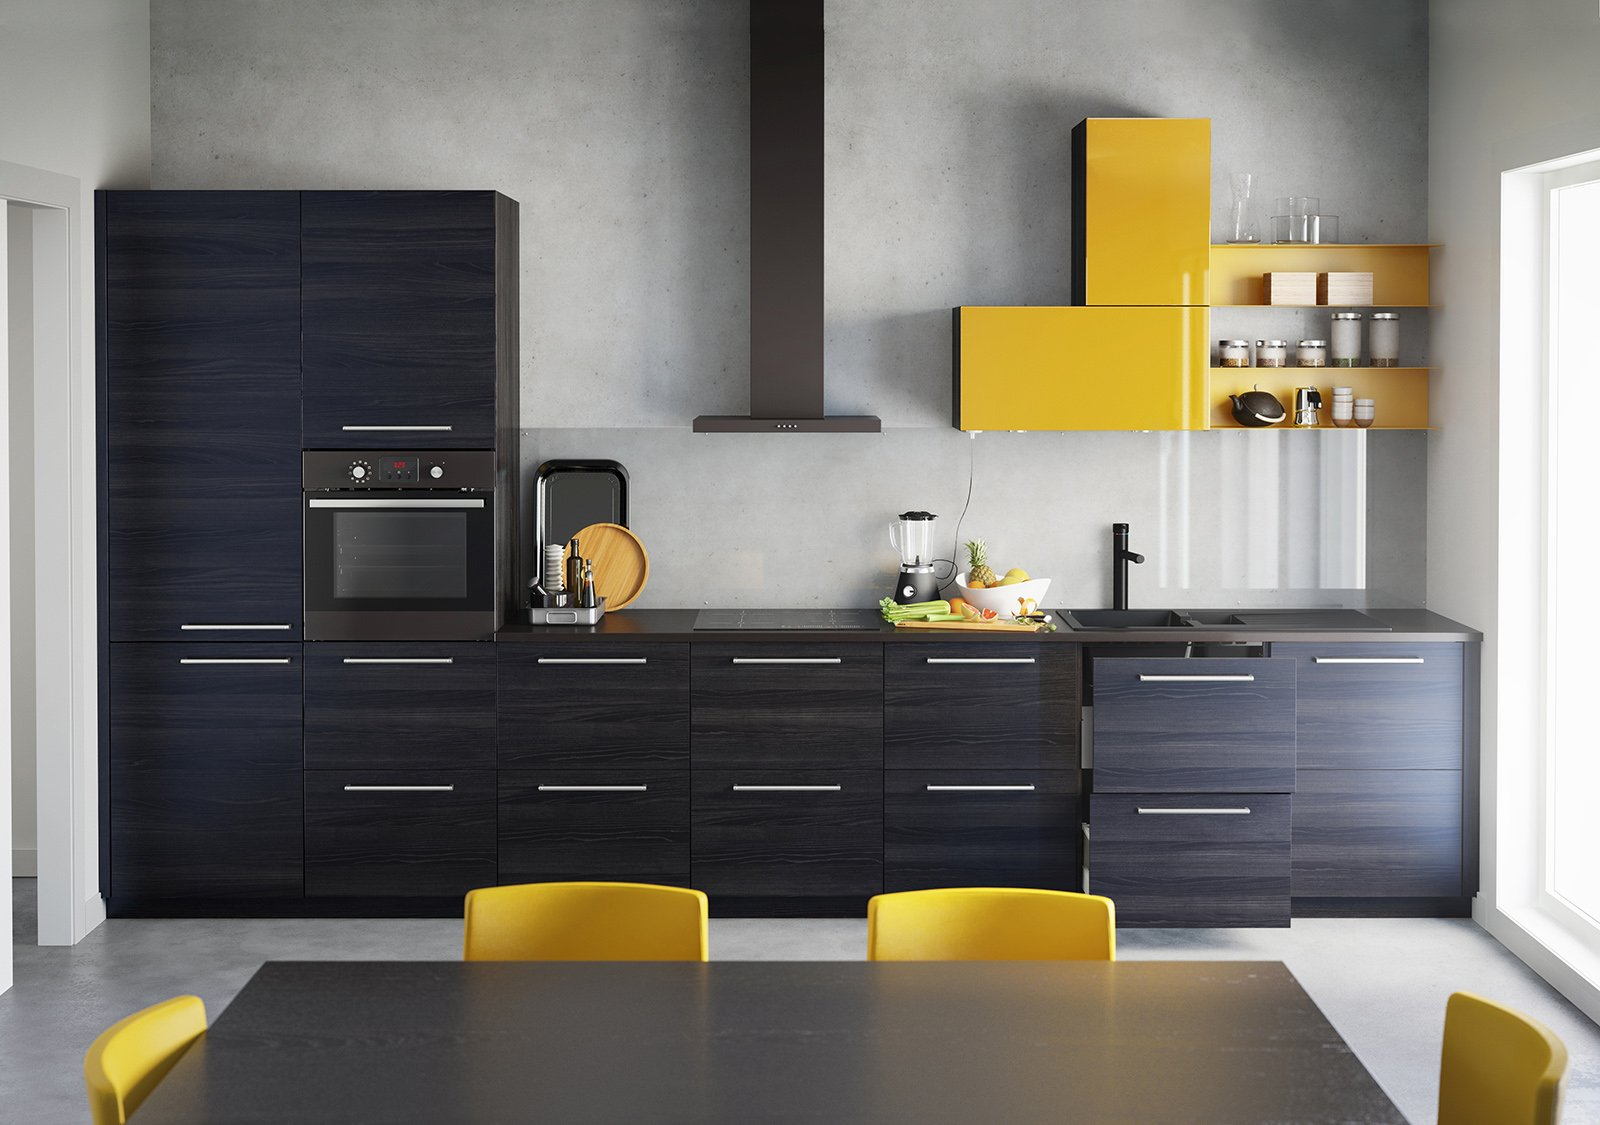 Emejing Ikea Bari Cucine Photos - Ideas & Design 2017 ...